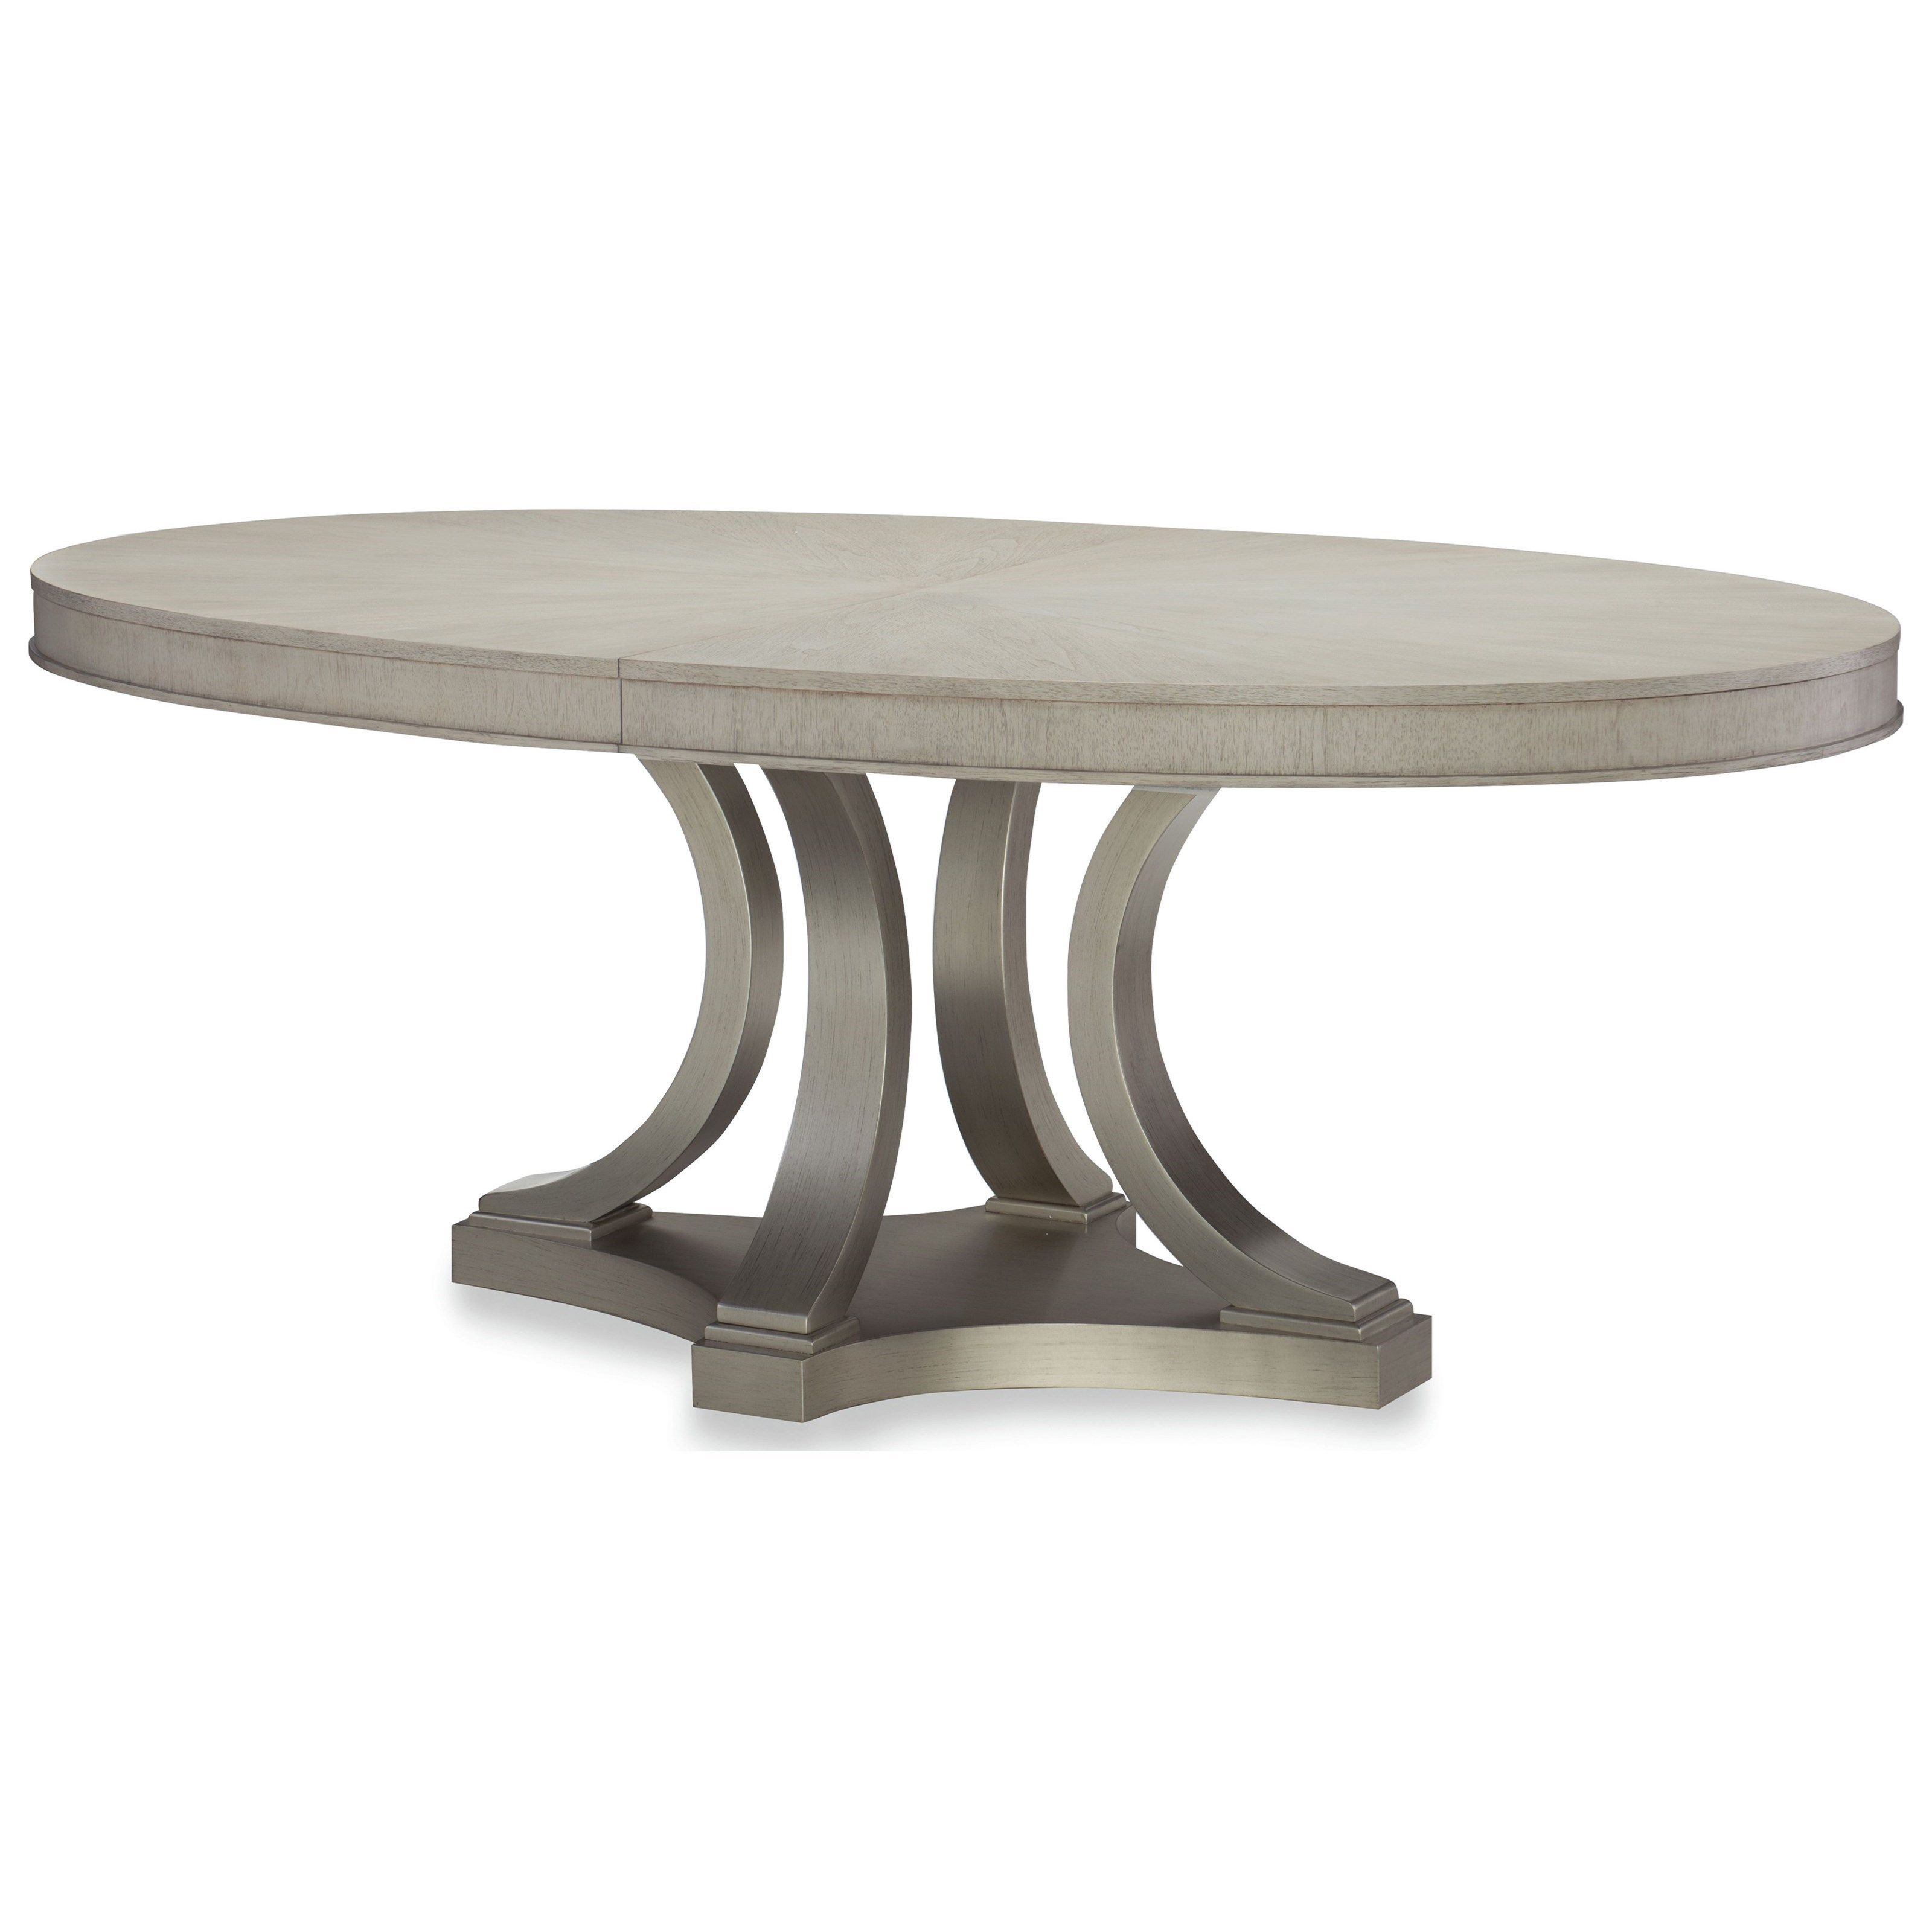 cinema oval dining table by rachael ray home by legacy classic at